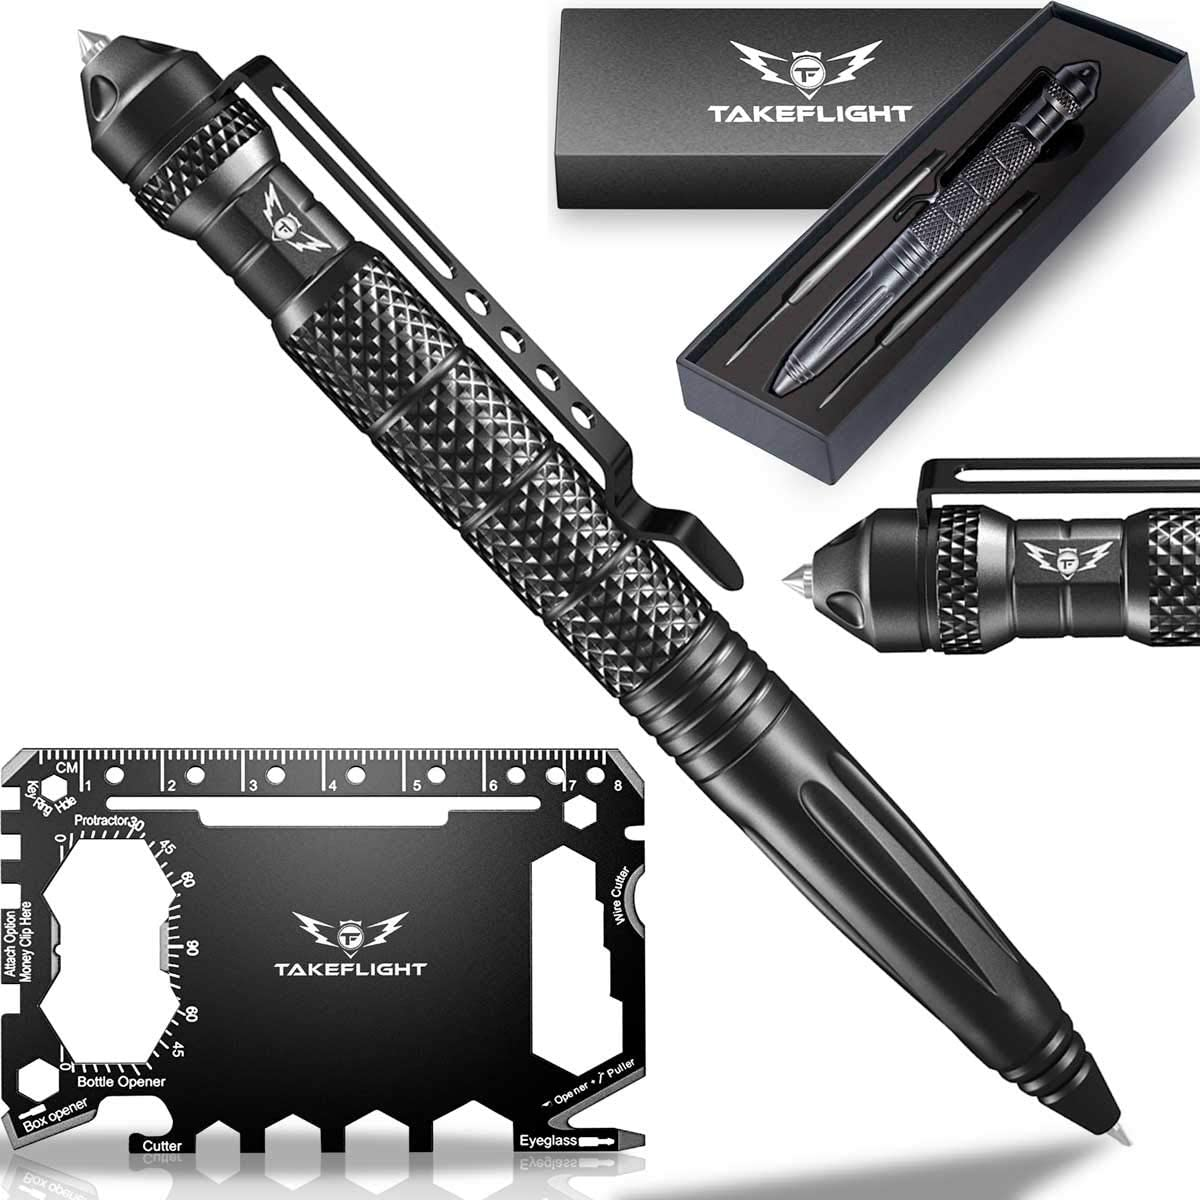 Tactical Pen Self Defense Tool Survival Multitool Window Glass Breaker For Police Military Swat Edc Smooth Writing Black Ballpoint Gift Boxed With Extra Refills Black Card Amazon Com